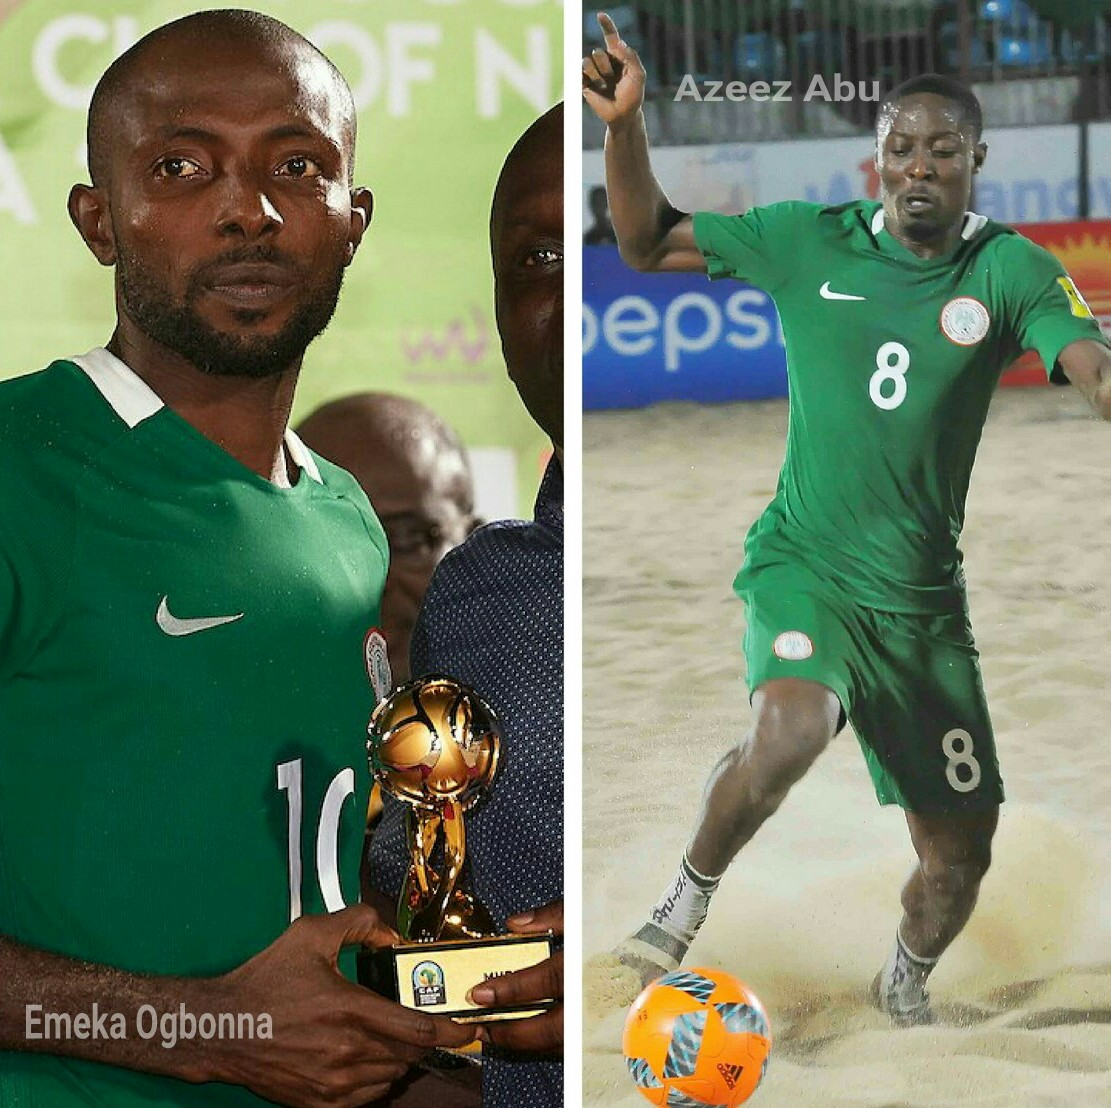 Beach Soccer AFCON: Ogbonna, Abu Lament Sand Eagles' Title Miss